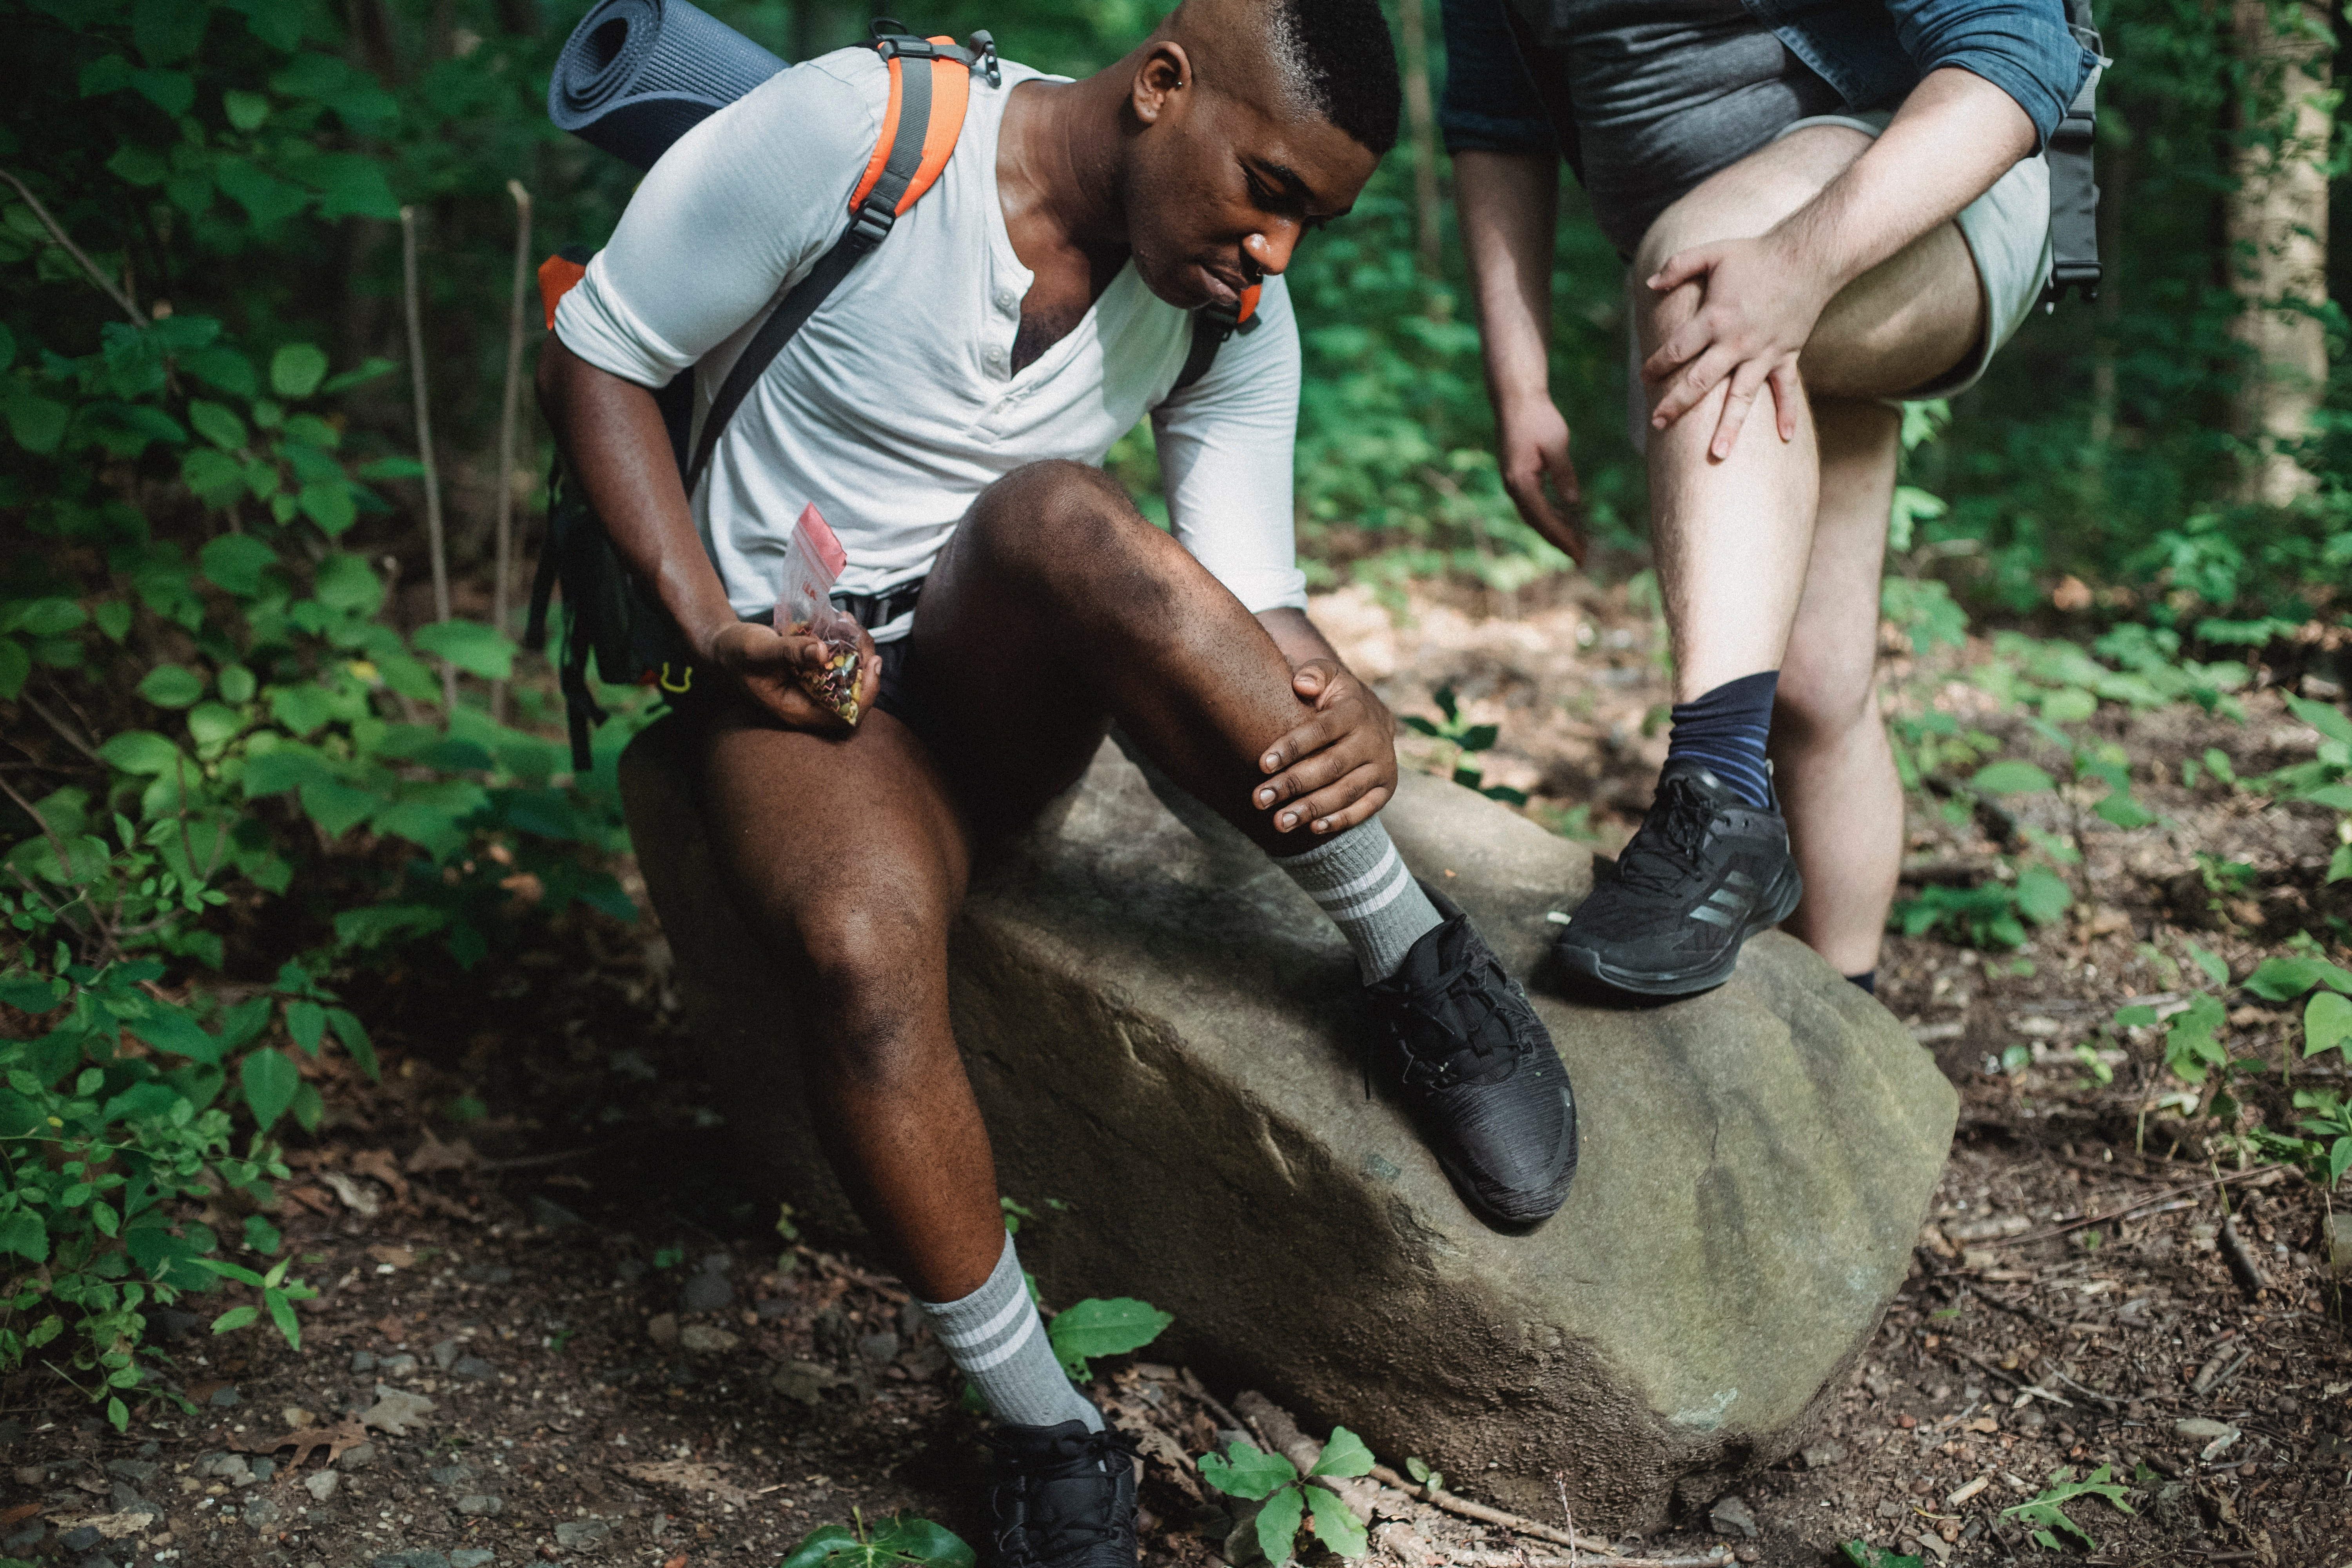 Pictured - Two males checking acari during hike in the forest | Source: Pexels